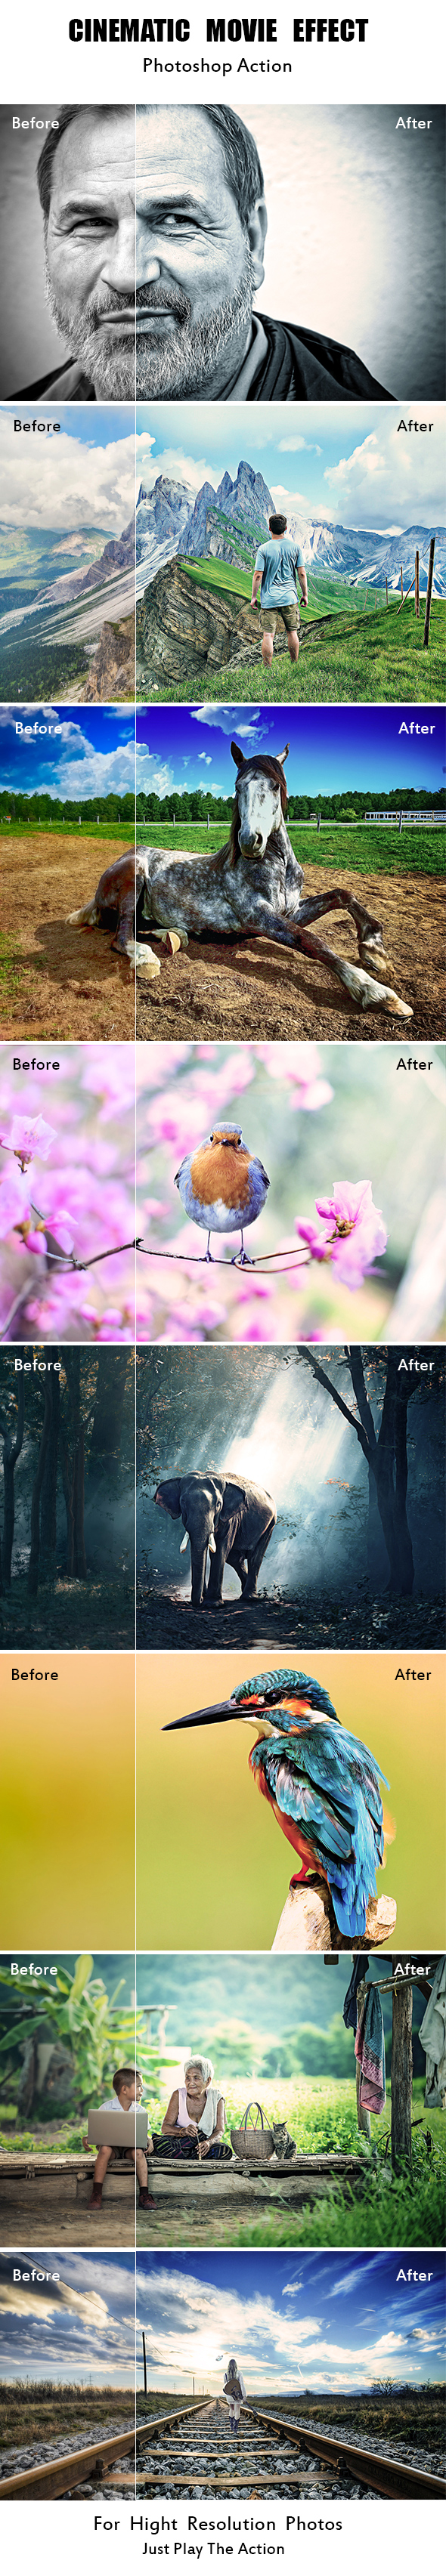 GraphicRiver Cinematic Movie Effect 21124917